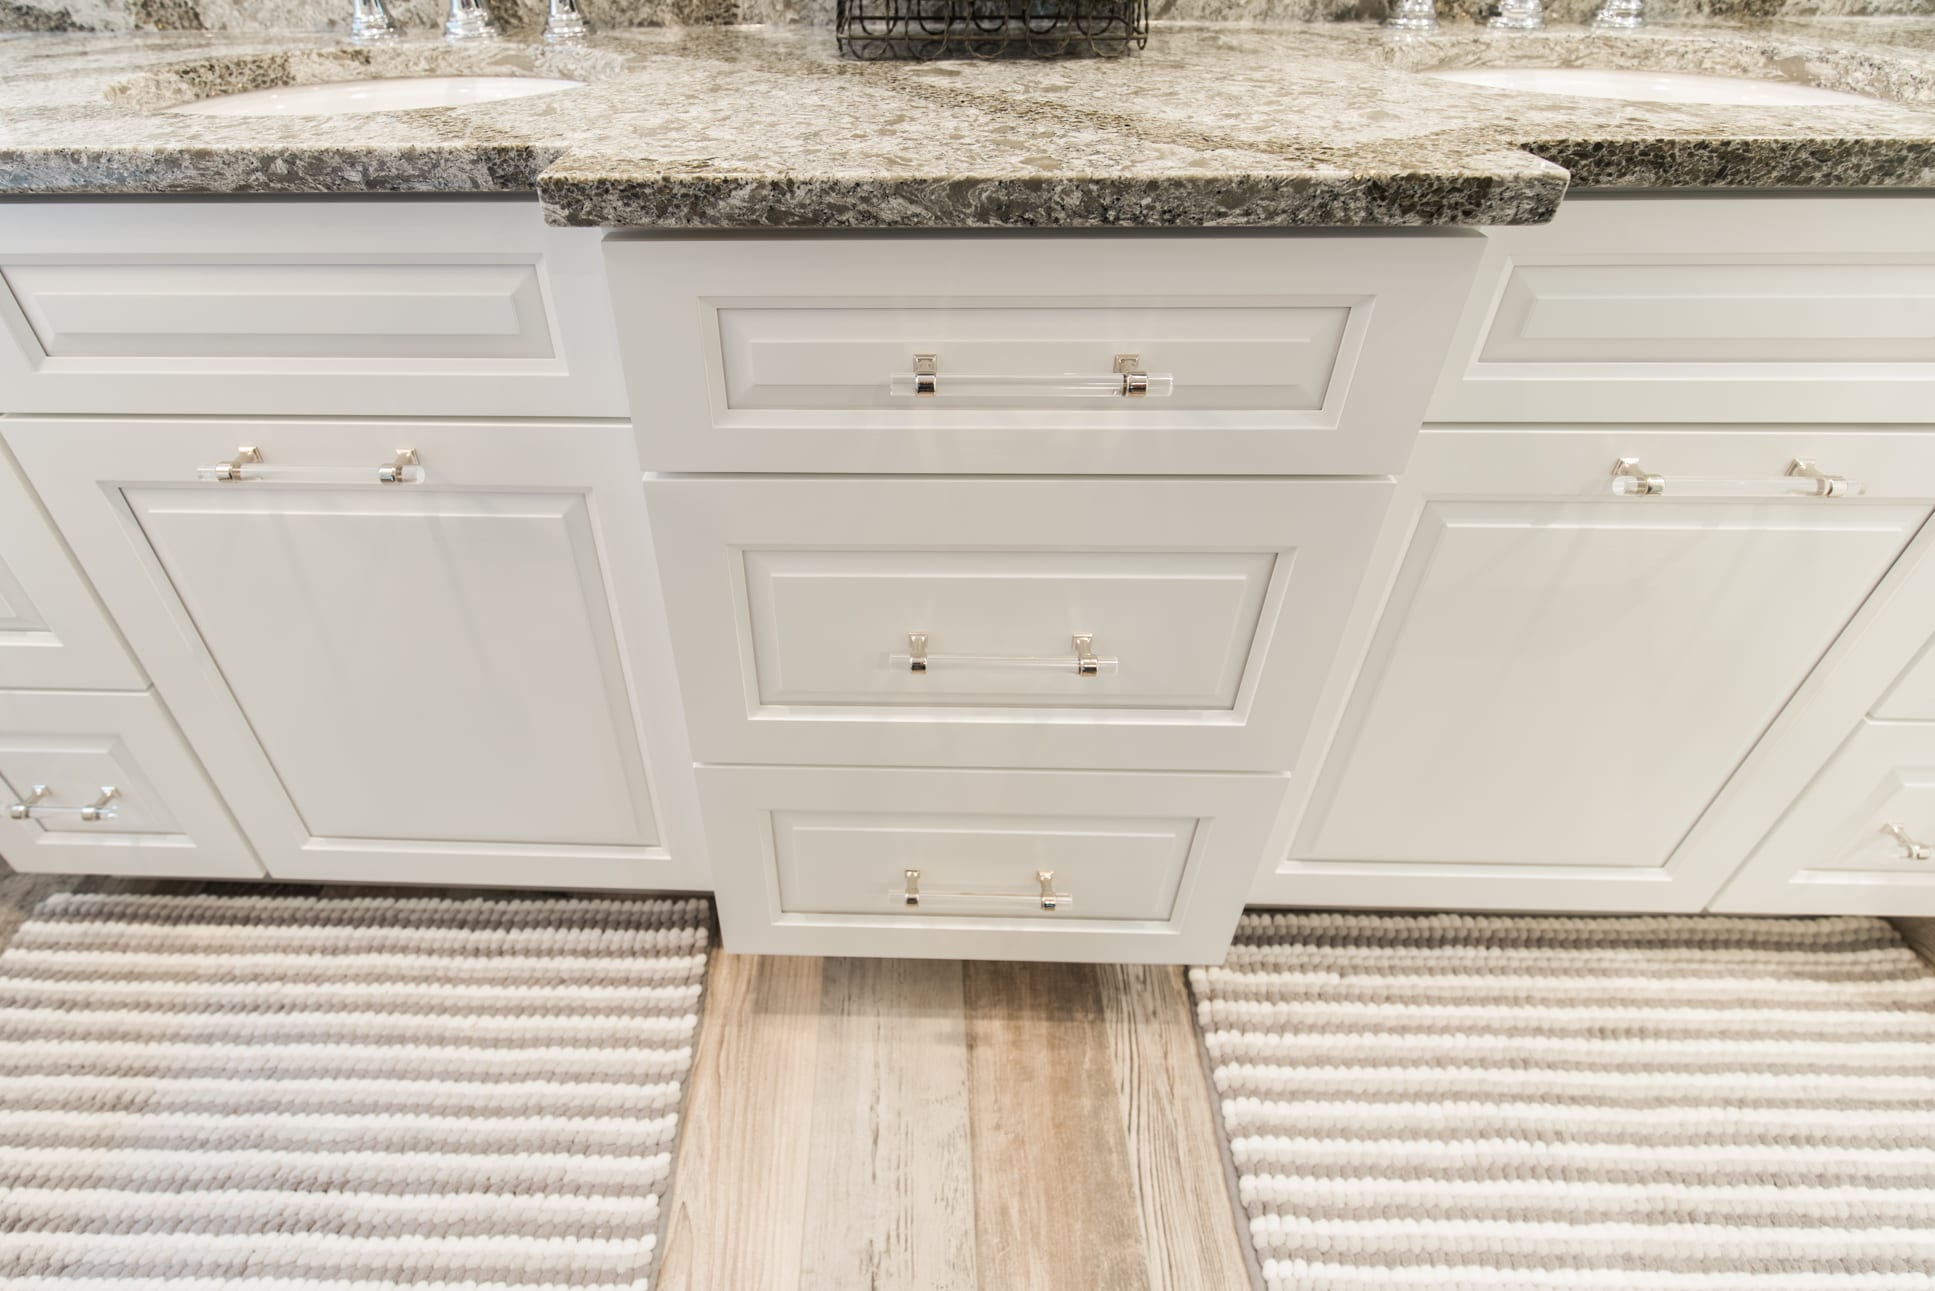 Granite Countertops Manassas Va Bathroom Vanity Tops Gallery Discover Granite